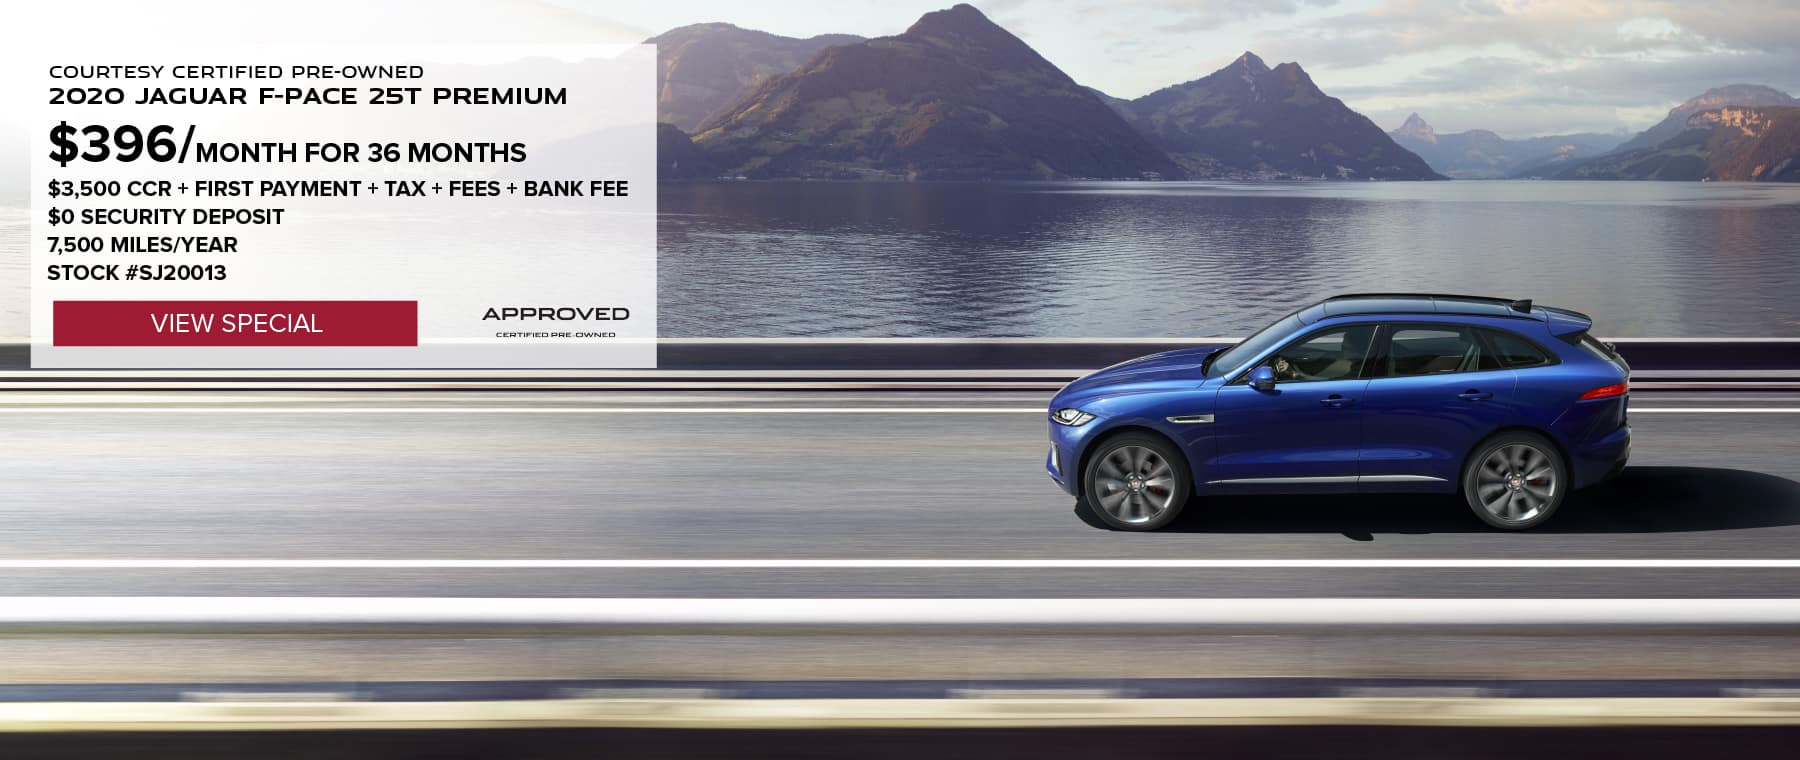 COURTESY VEHICLE. 2020 JAGUAR F-PACE 25T PREMIUM. $396 PER MONTH FOR 36 MONTHS. $3,500 CCR + FIRST PAYMENT + TAX + FEES + BANK FEE. $0 SECURITY DEPOSIT. 7,500 MILES PER YEAR. STOCK #SJ20013. VIEW SPECIAL. BLUE JAGUAR F-PACE DRIVING NEAR OCEAN.